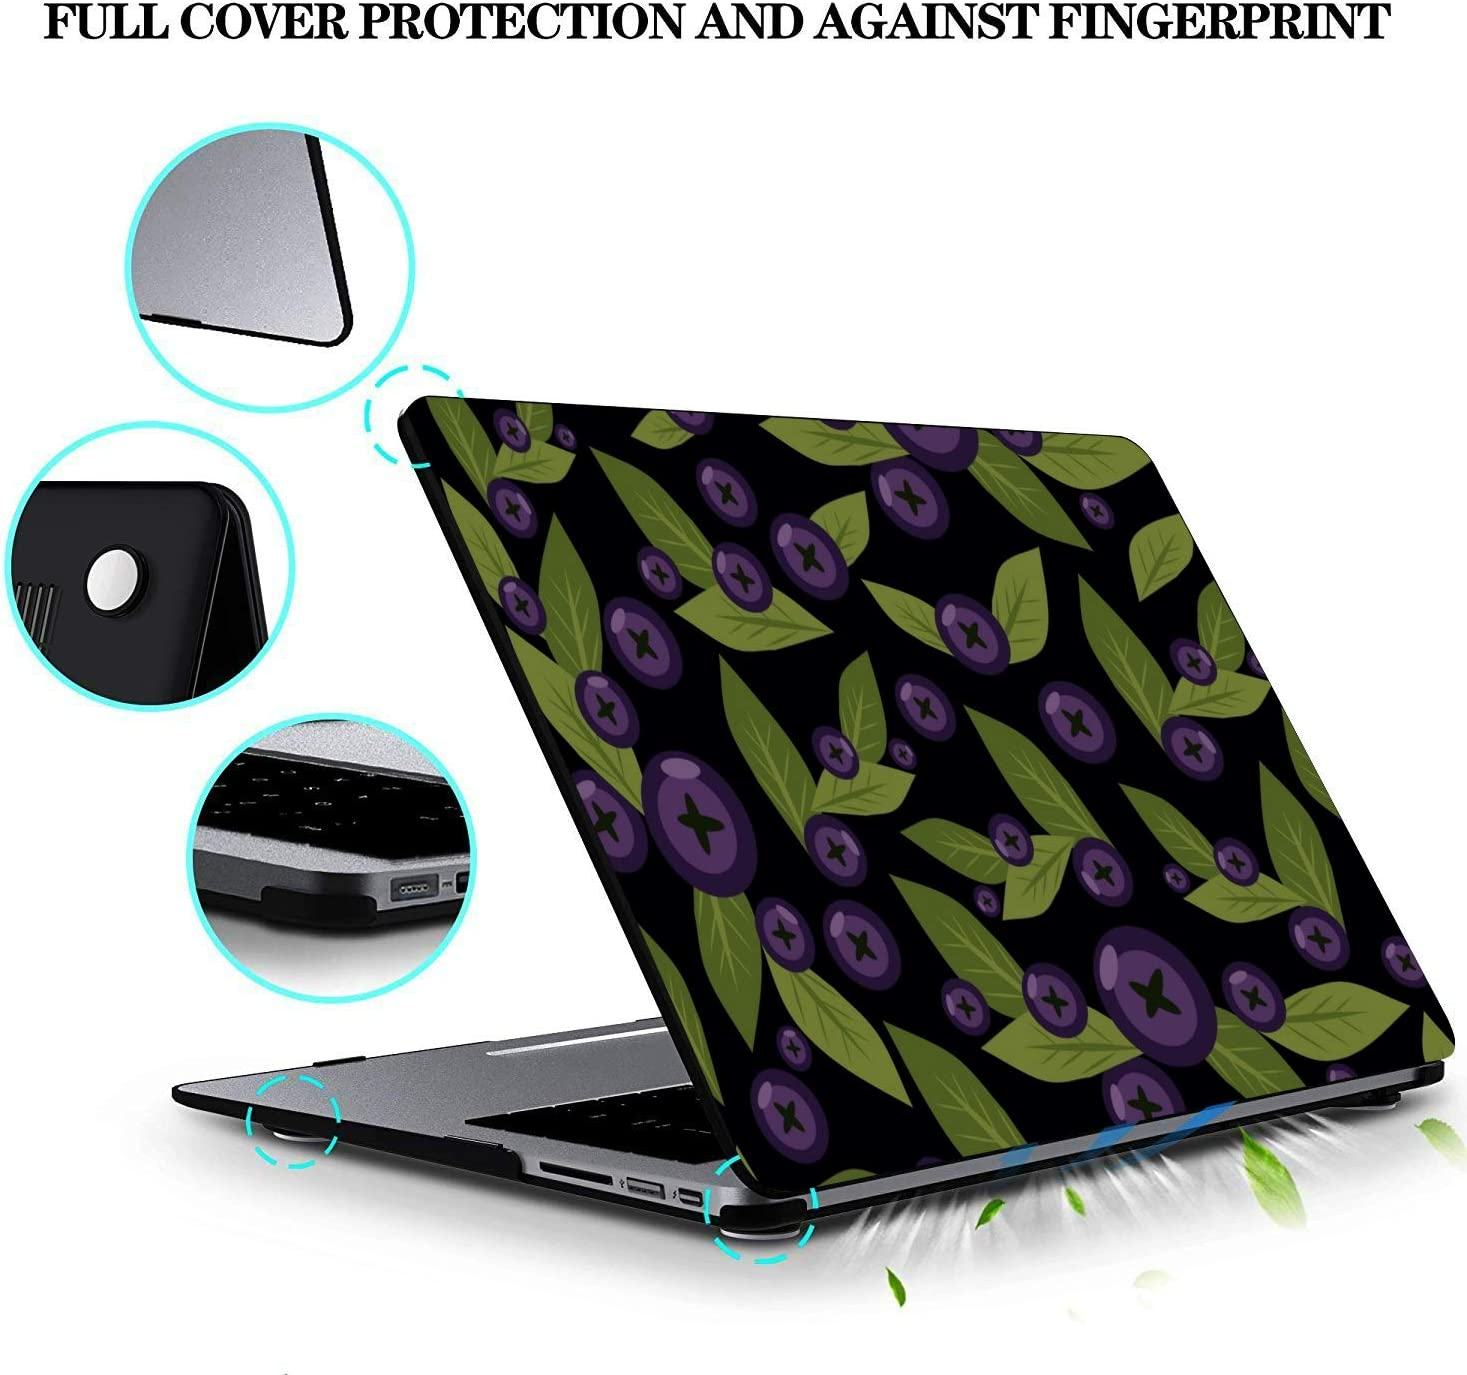 Laptop Pro Accessories Summer Sweet Sour Fruit Blueberry Plastic Hard Shell Compatible Mac Air 11 Pro 13 15 Cover for MacBook Air Protection for MacBook 2016-2019 Version